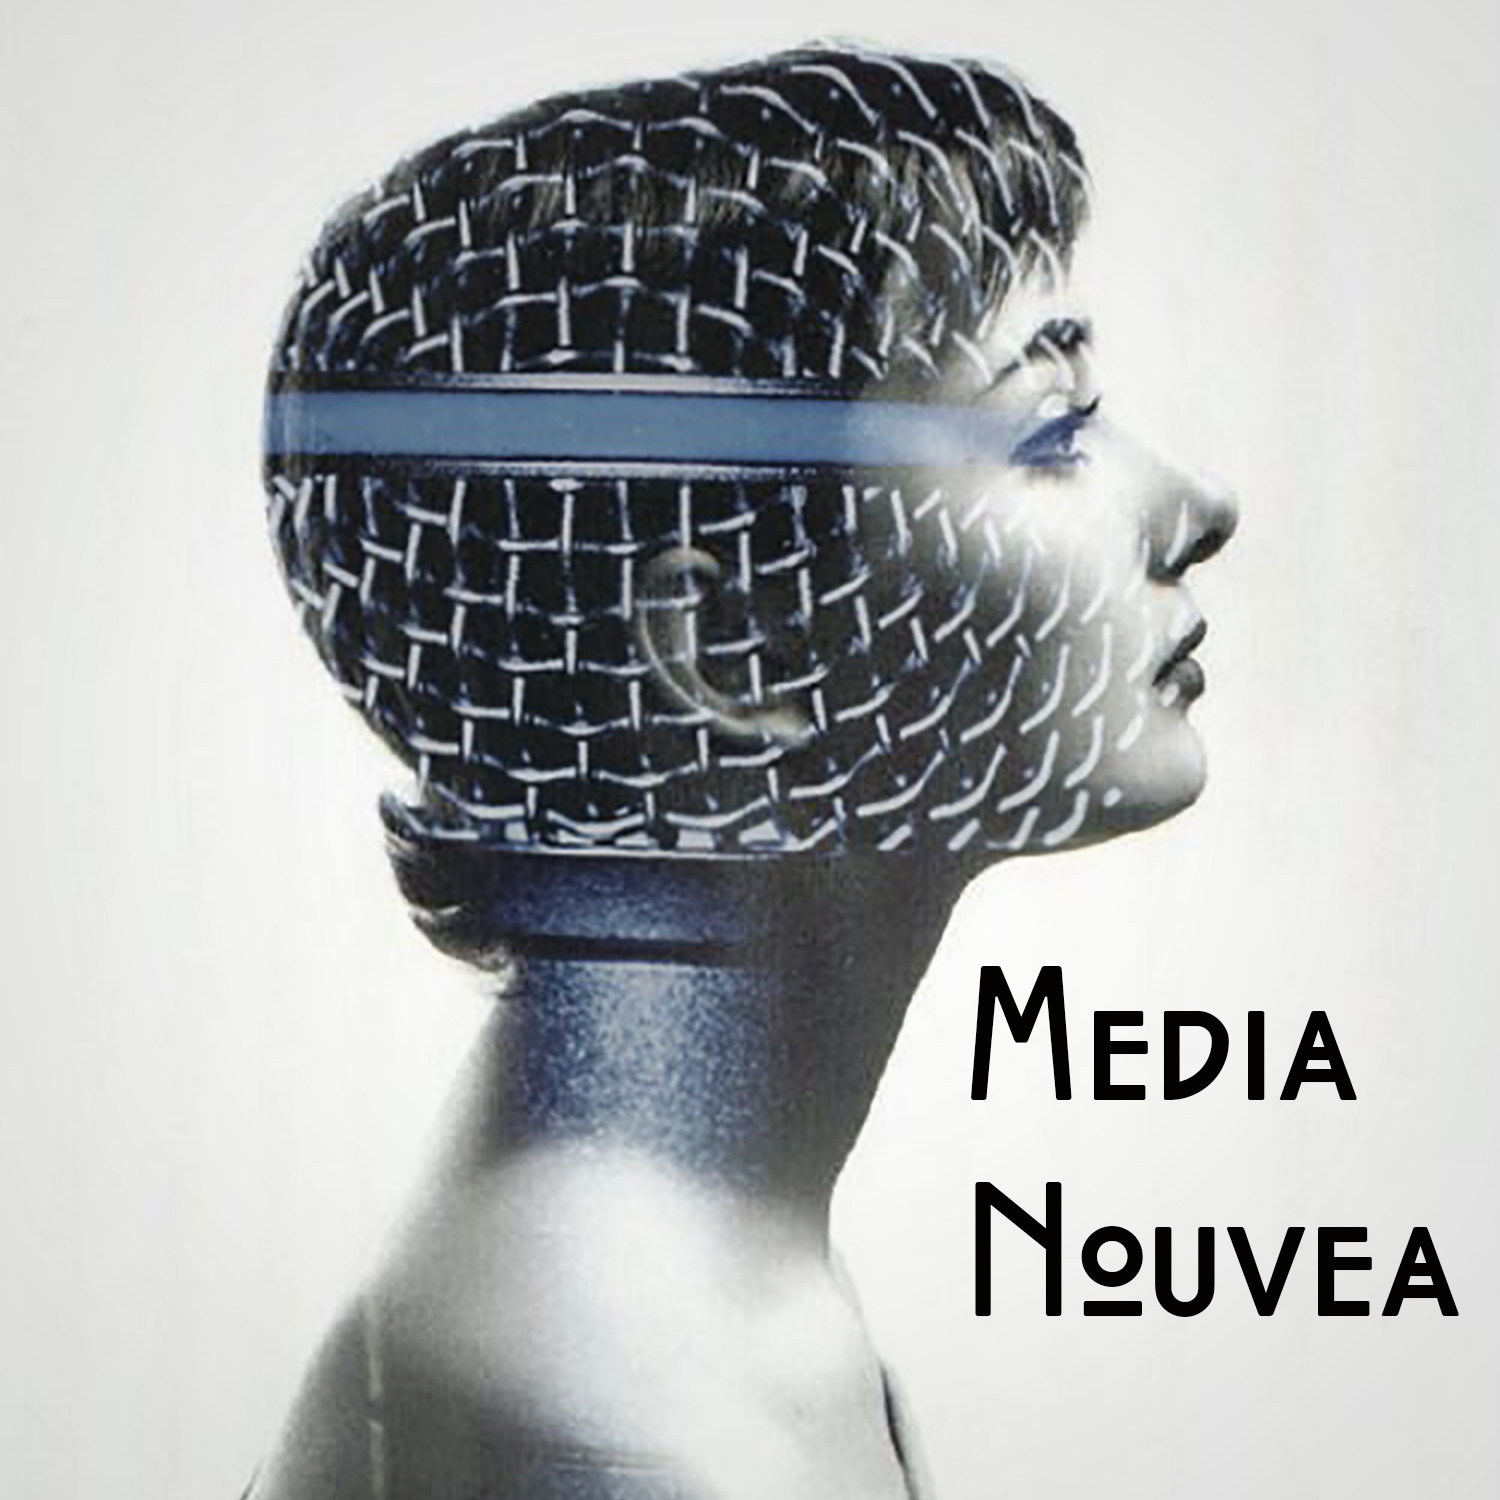 Logo for Media Nouveau. Audrey Hepburn in profile with a microphone superimposed over the image.